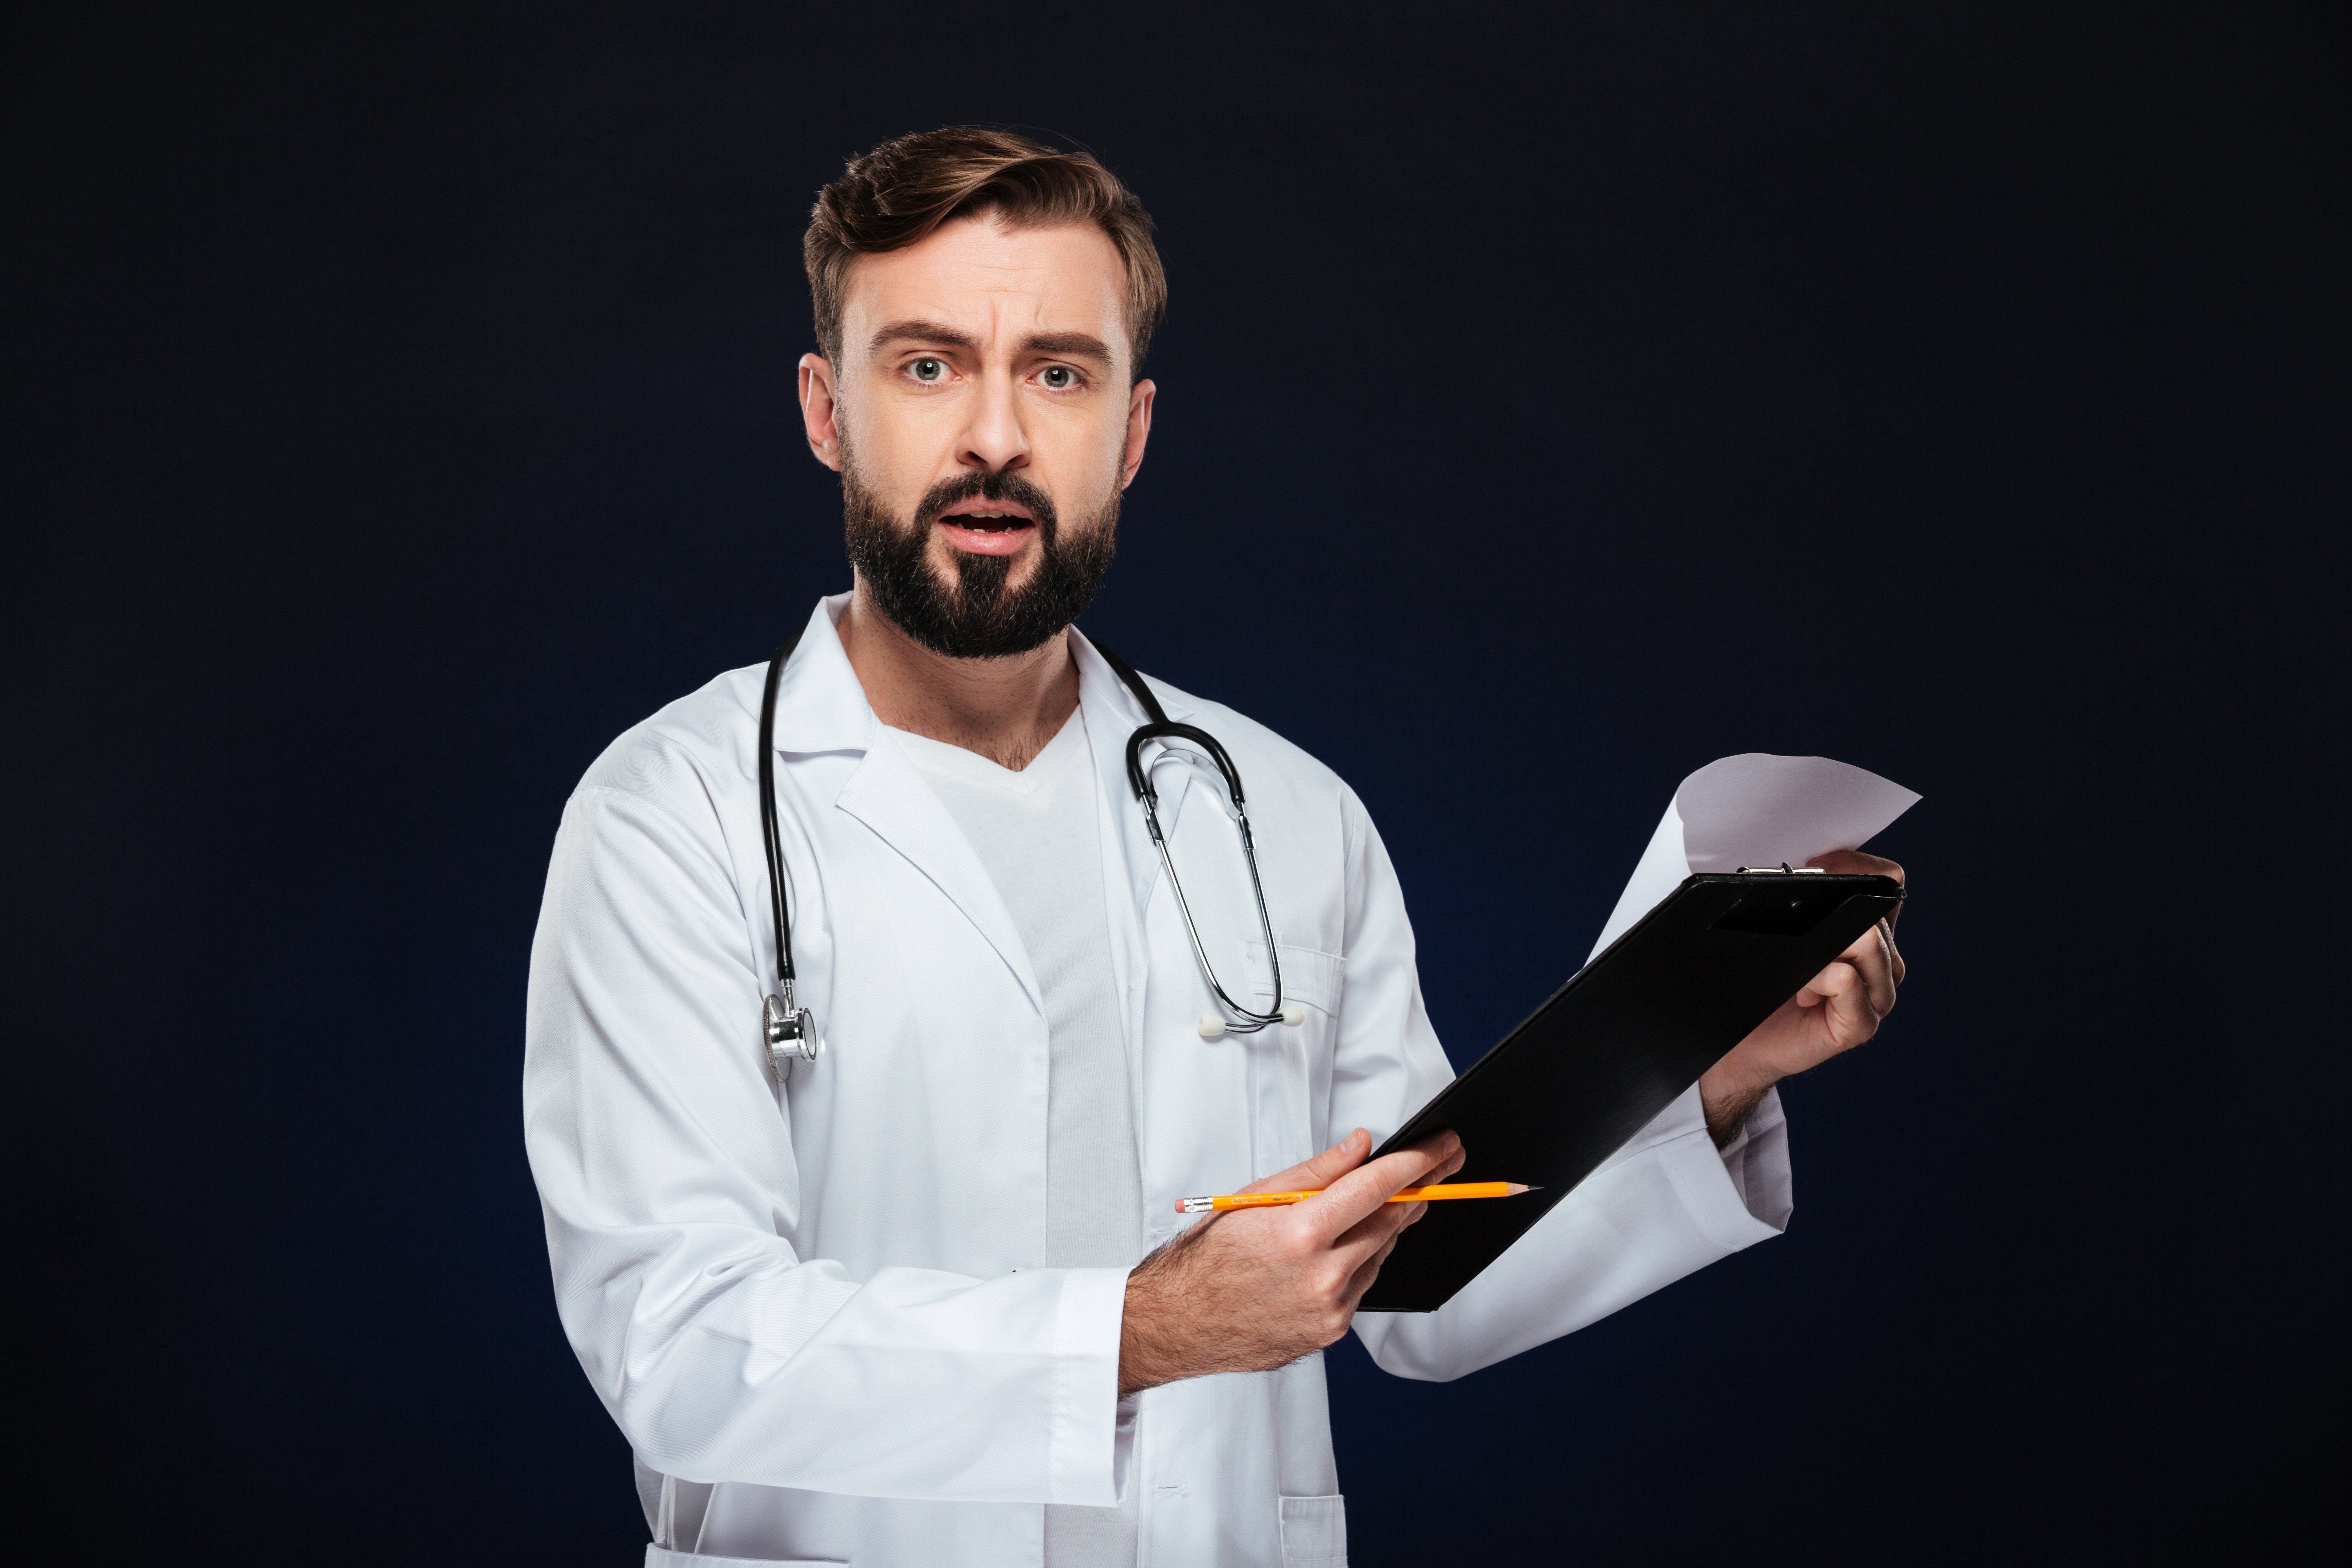 Portrait of a shocked male doctor. | Photo: Freepik.